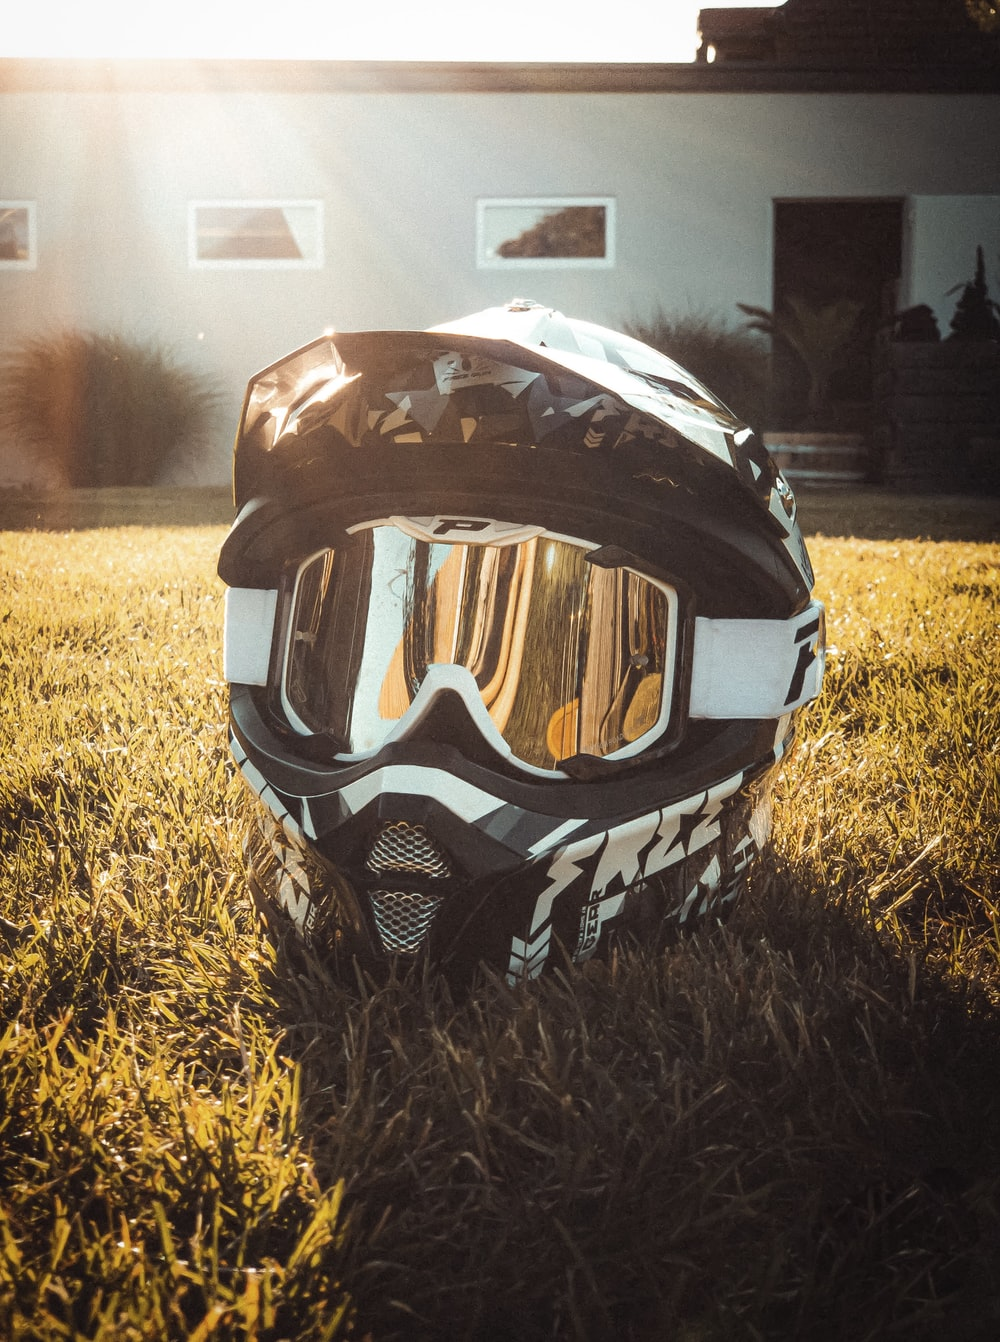 black and gray helmet on grass during daytime